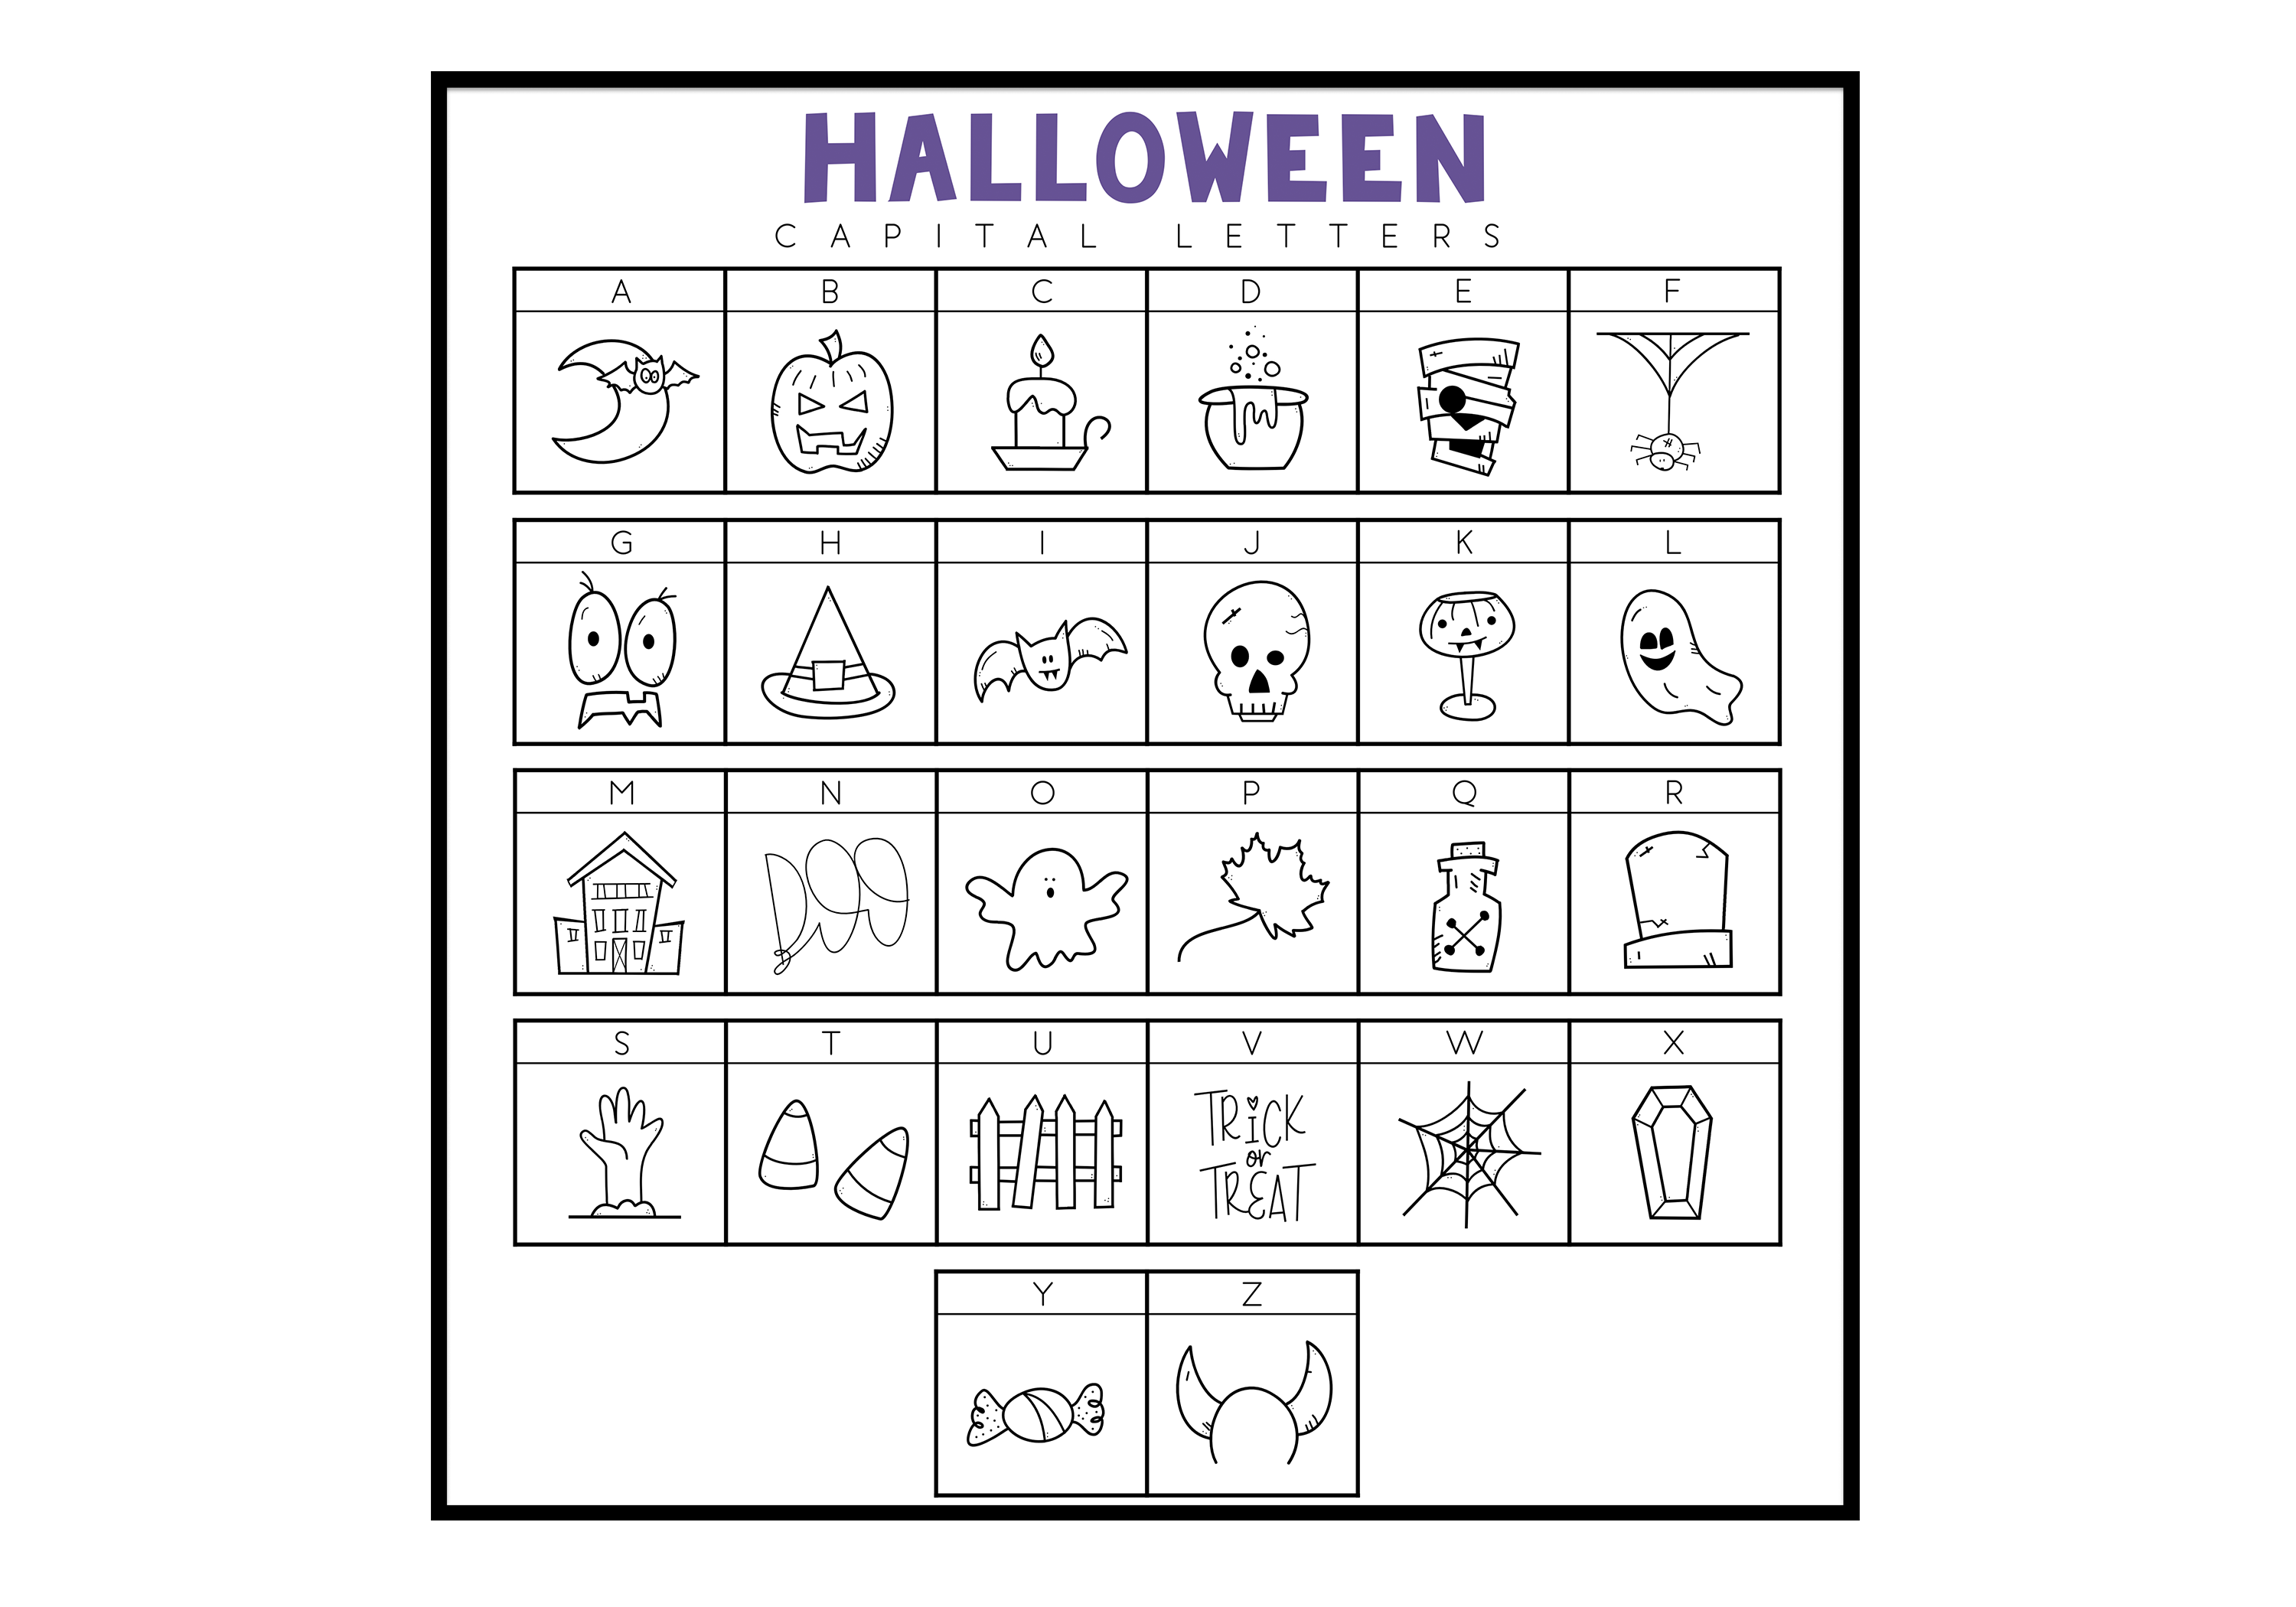 Creep It Real - A Spooky Halloween Doodles Font example image 4